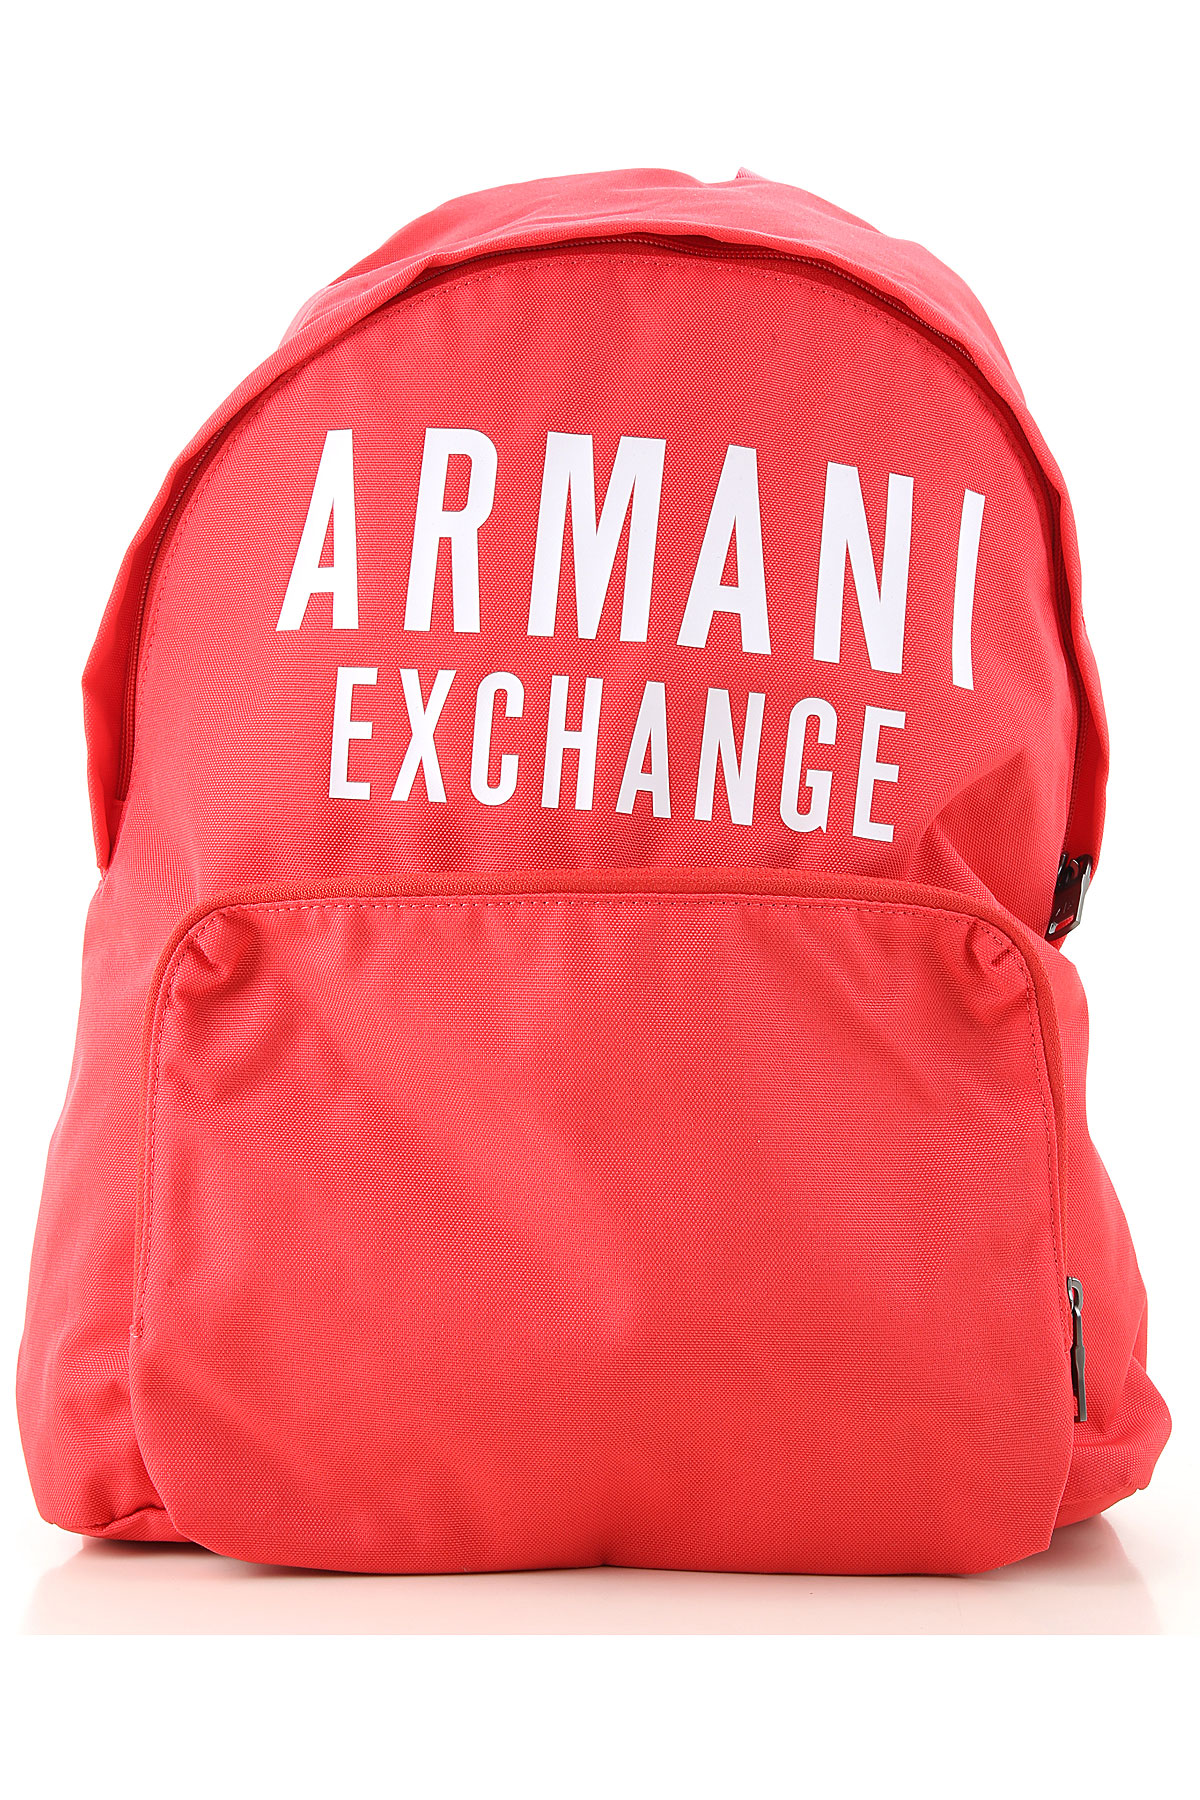 Armani Exchange Backpack for Men On Sale, Red, polyester, 2019